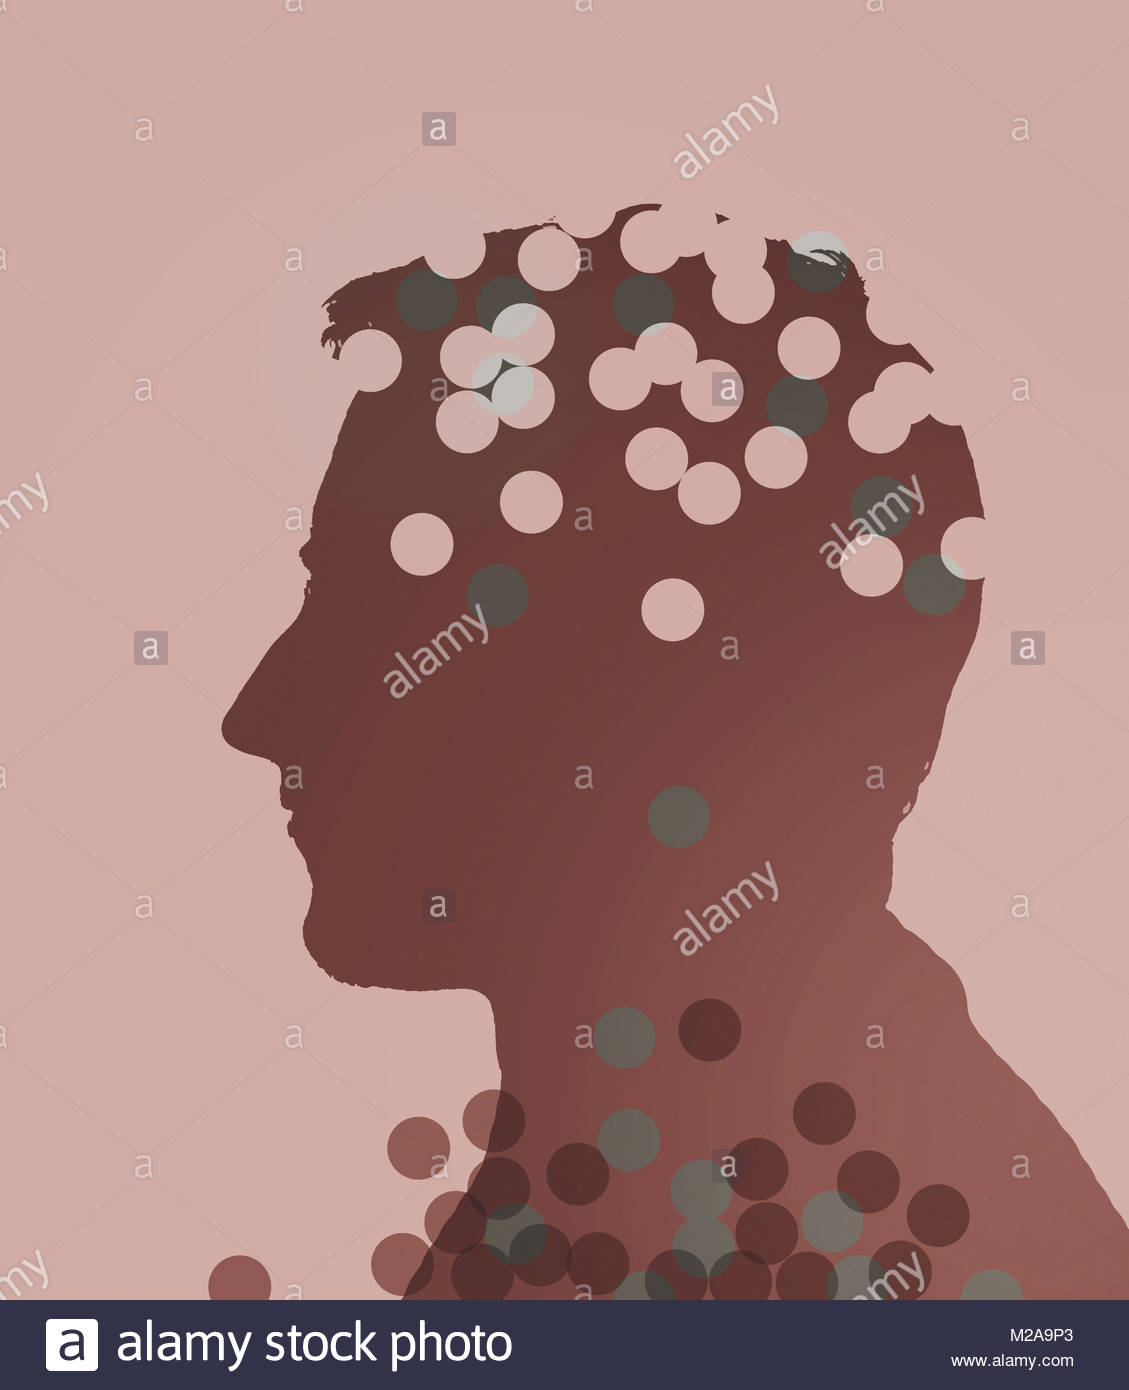 Circles falling from profile of man's head leaving holes - Stock Image